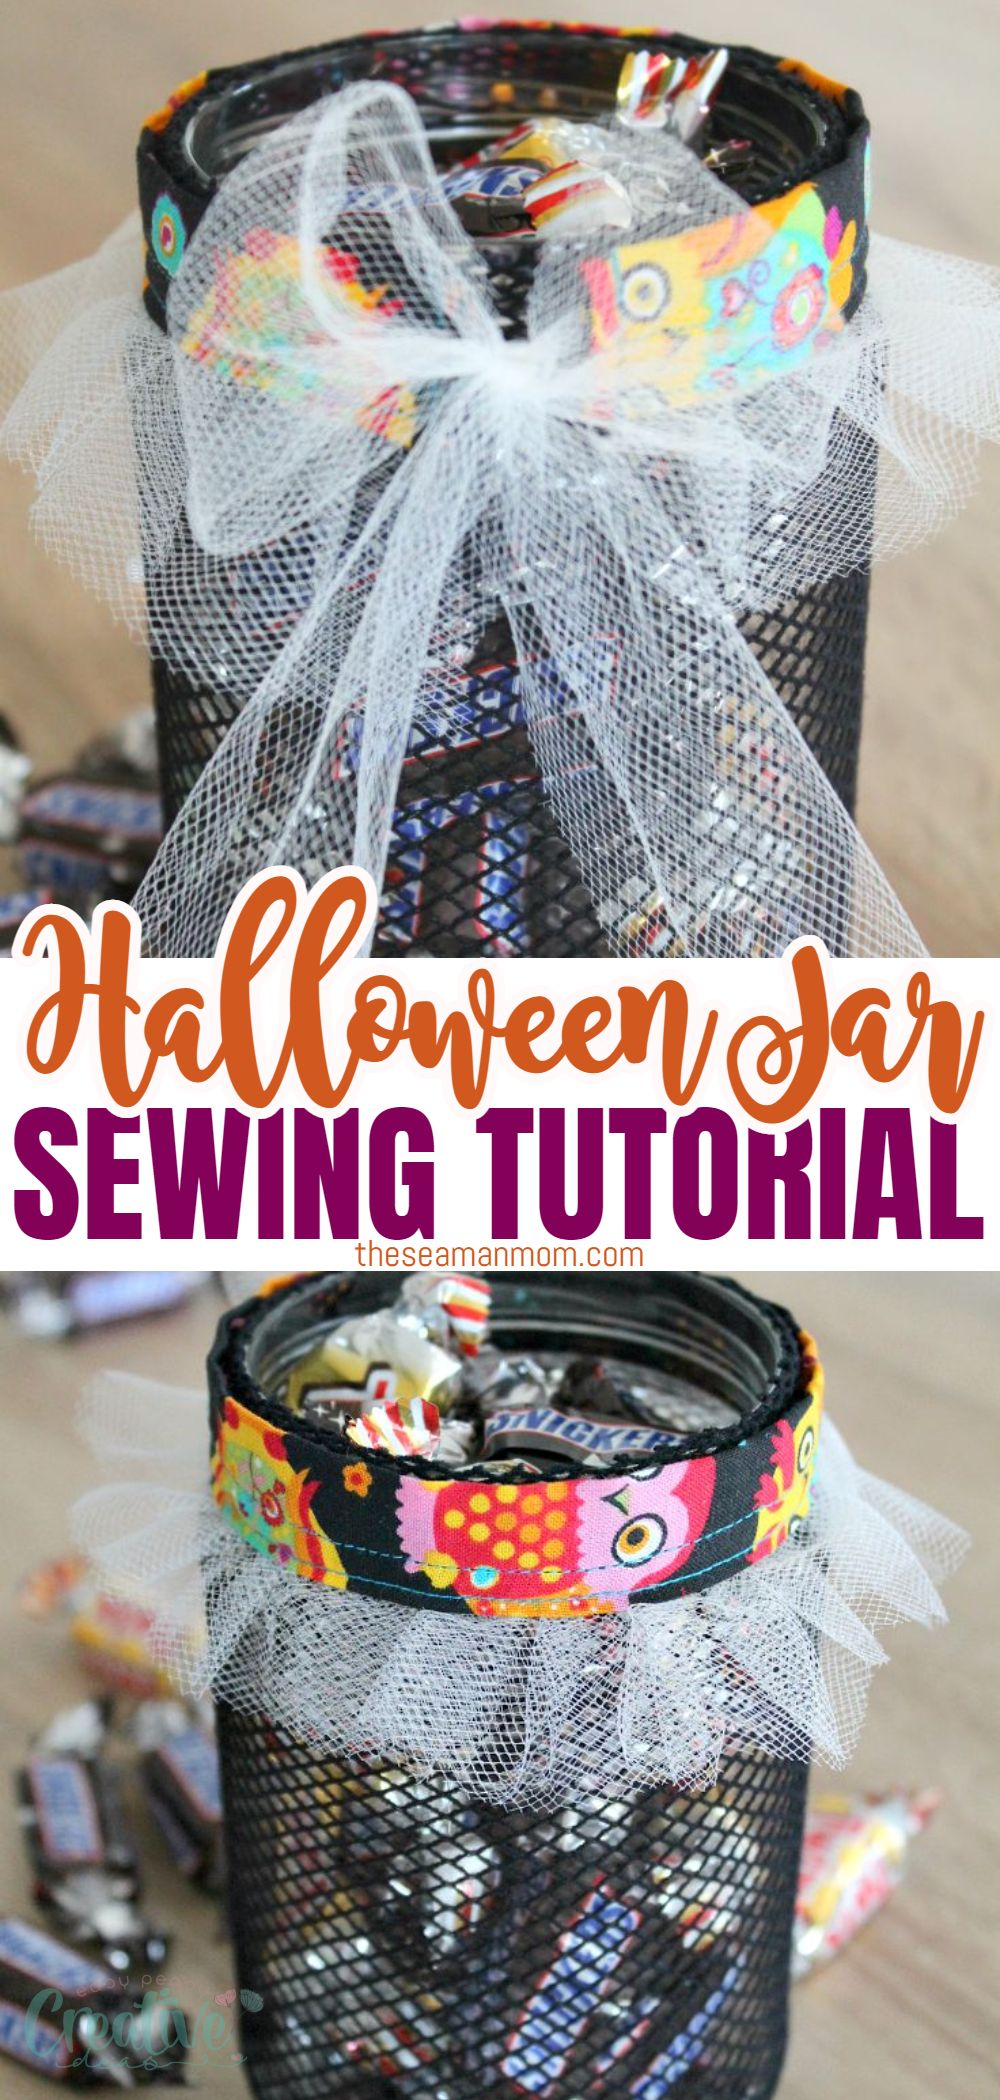 Have you been looking for a cute candy jar idea to make for your kids? Halloween offers a great opportunity to use mason jars in whole new and fun ways! Here's an easy craft/sewing tutorial for a Halloween Jar, perfect to use as home décor, for treats or Halloween parties! So easy to make, useful and looks so adorable! via @petroneagu